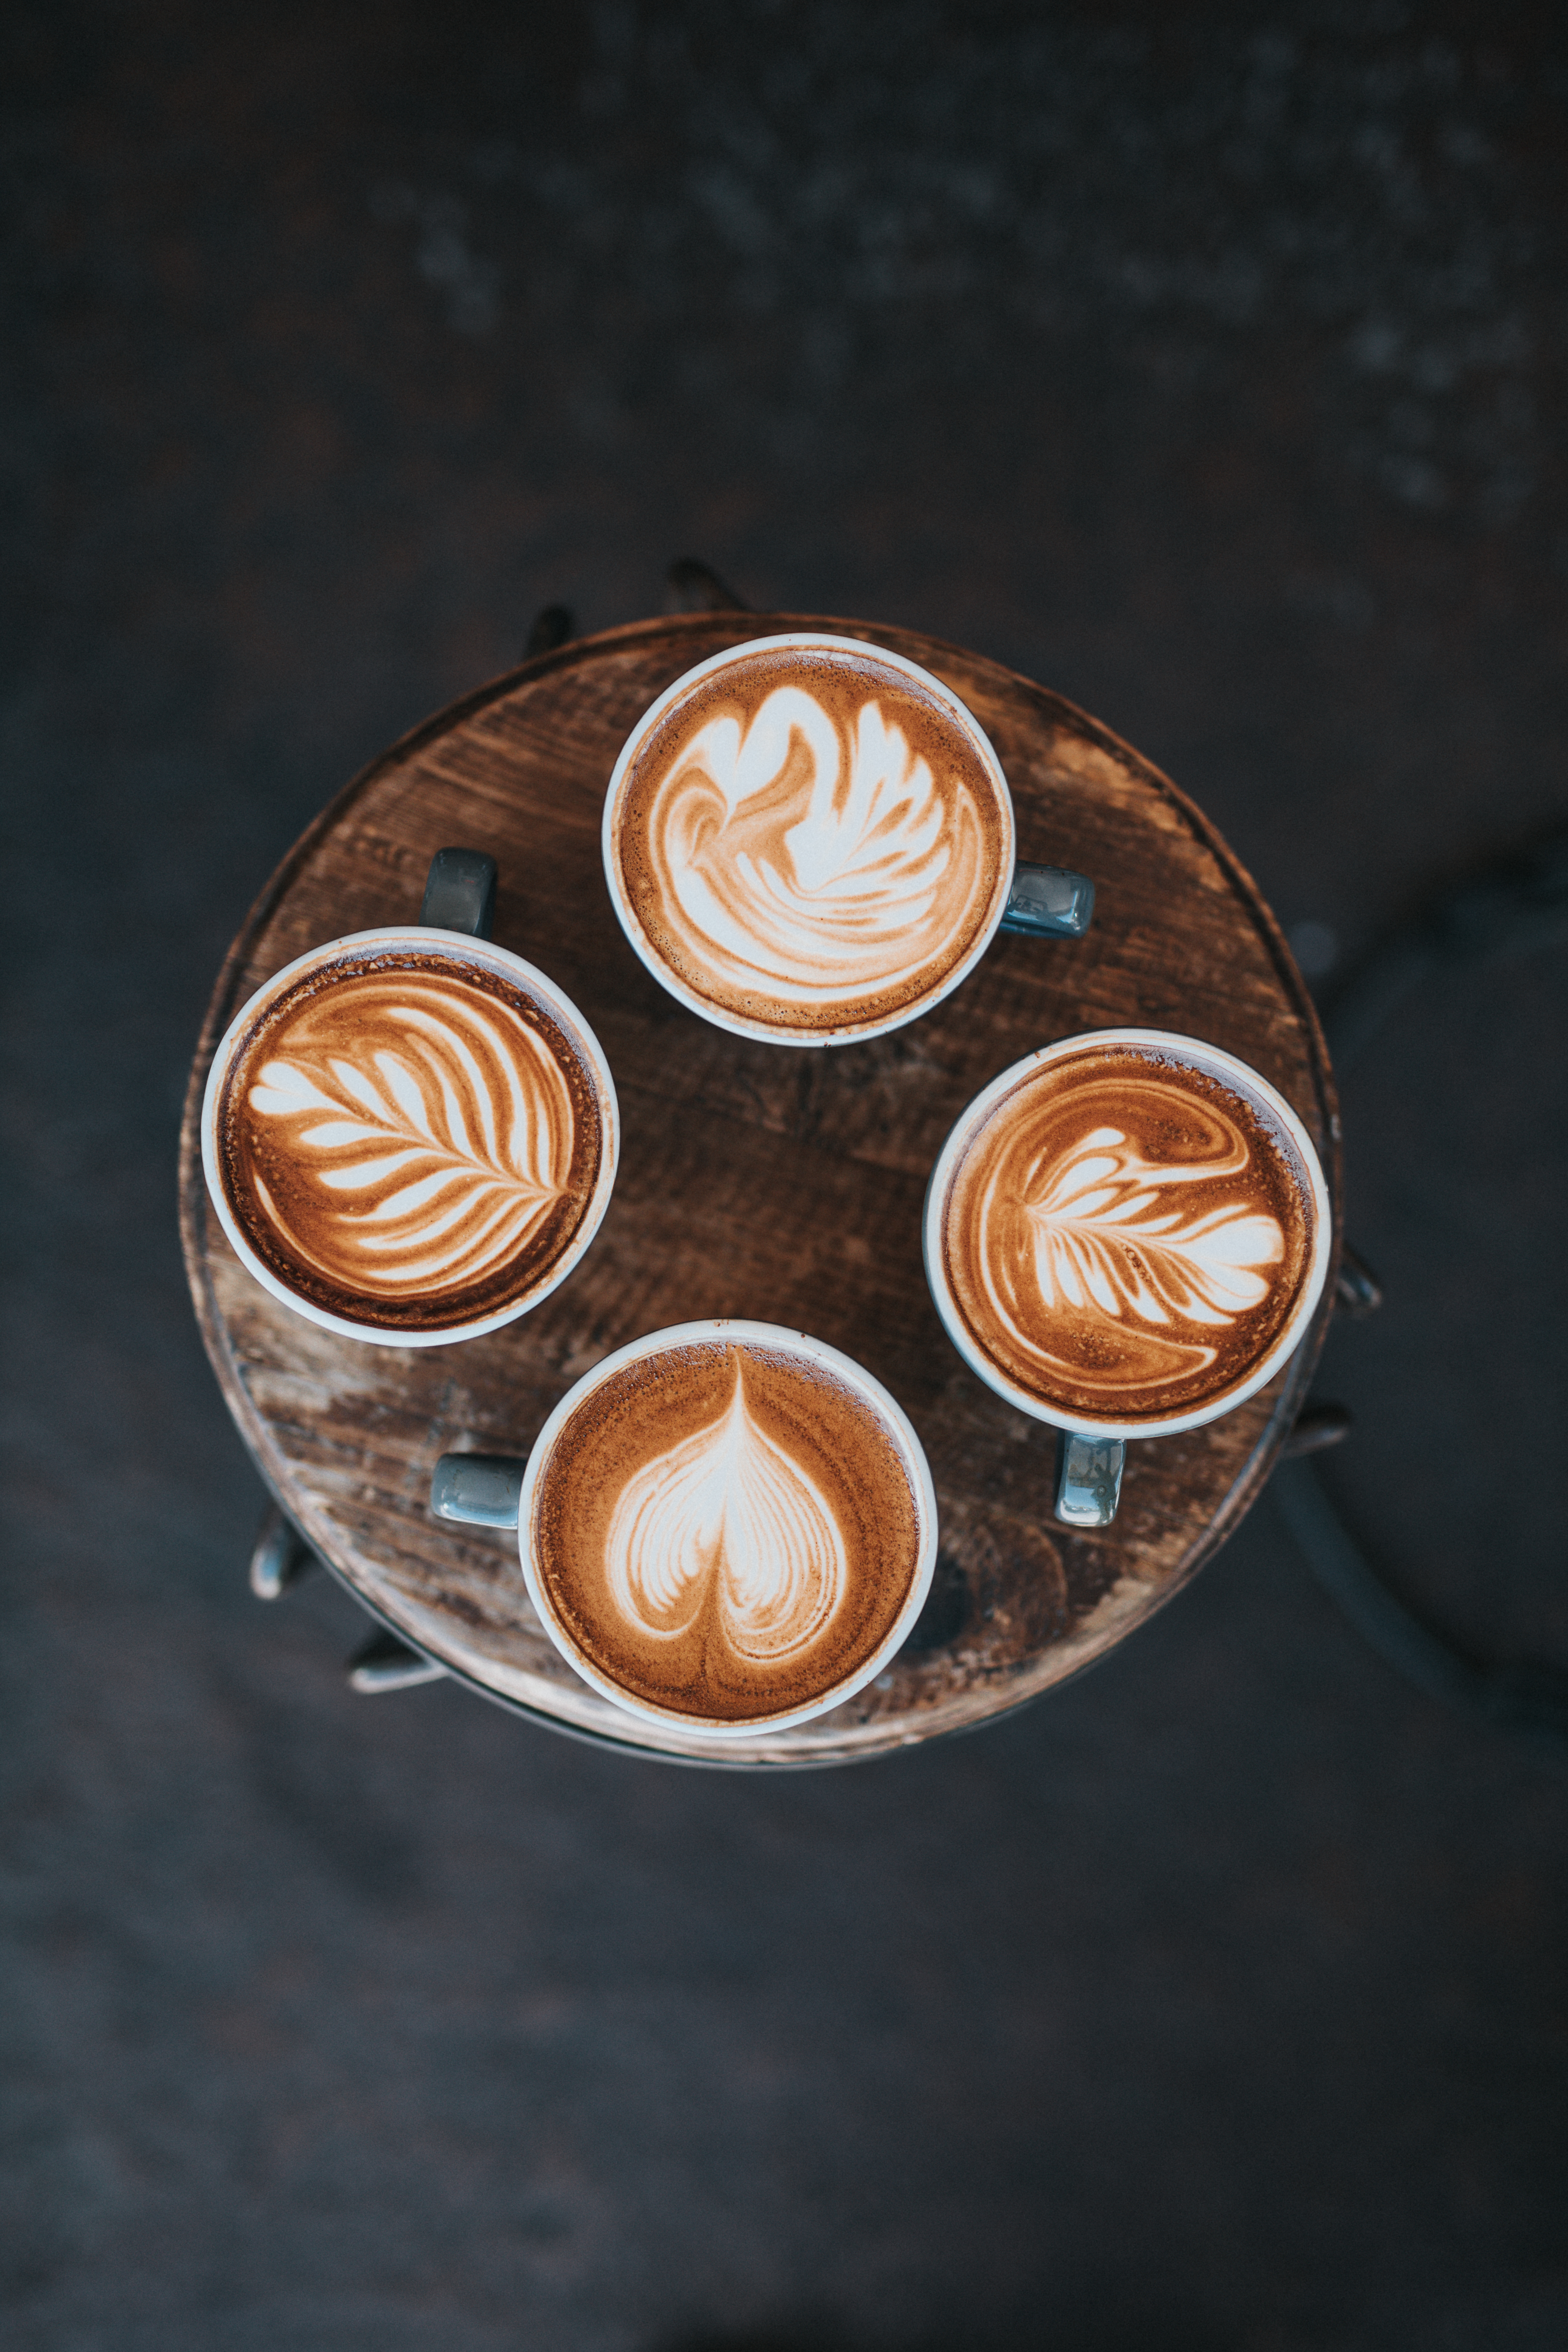 Fall Wooden Wallpaper 100 Coffee Pictures Download Free Images On Unsplash